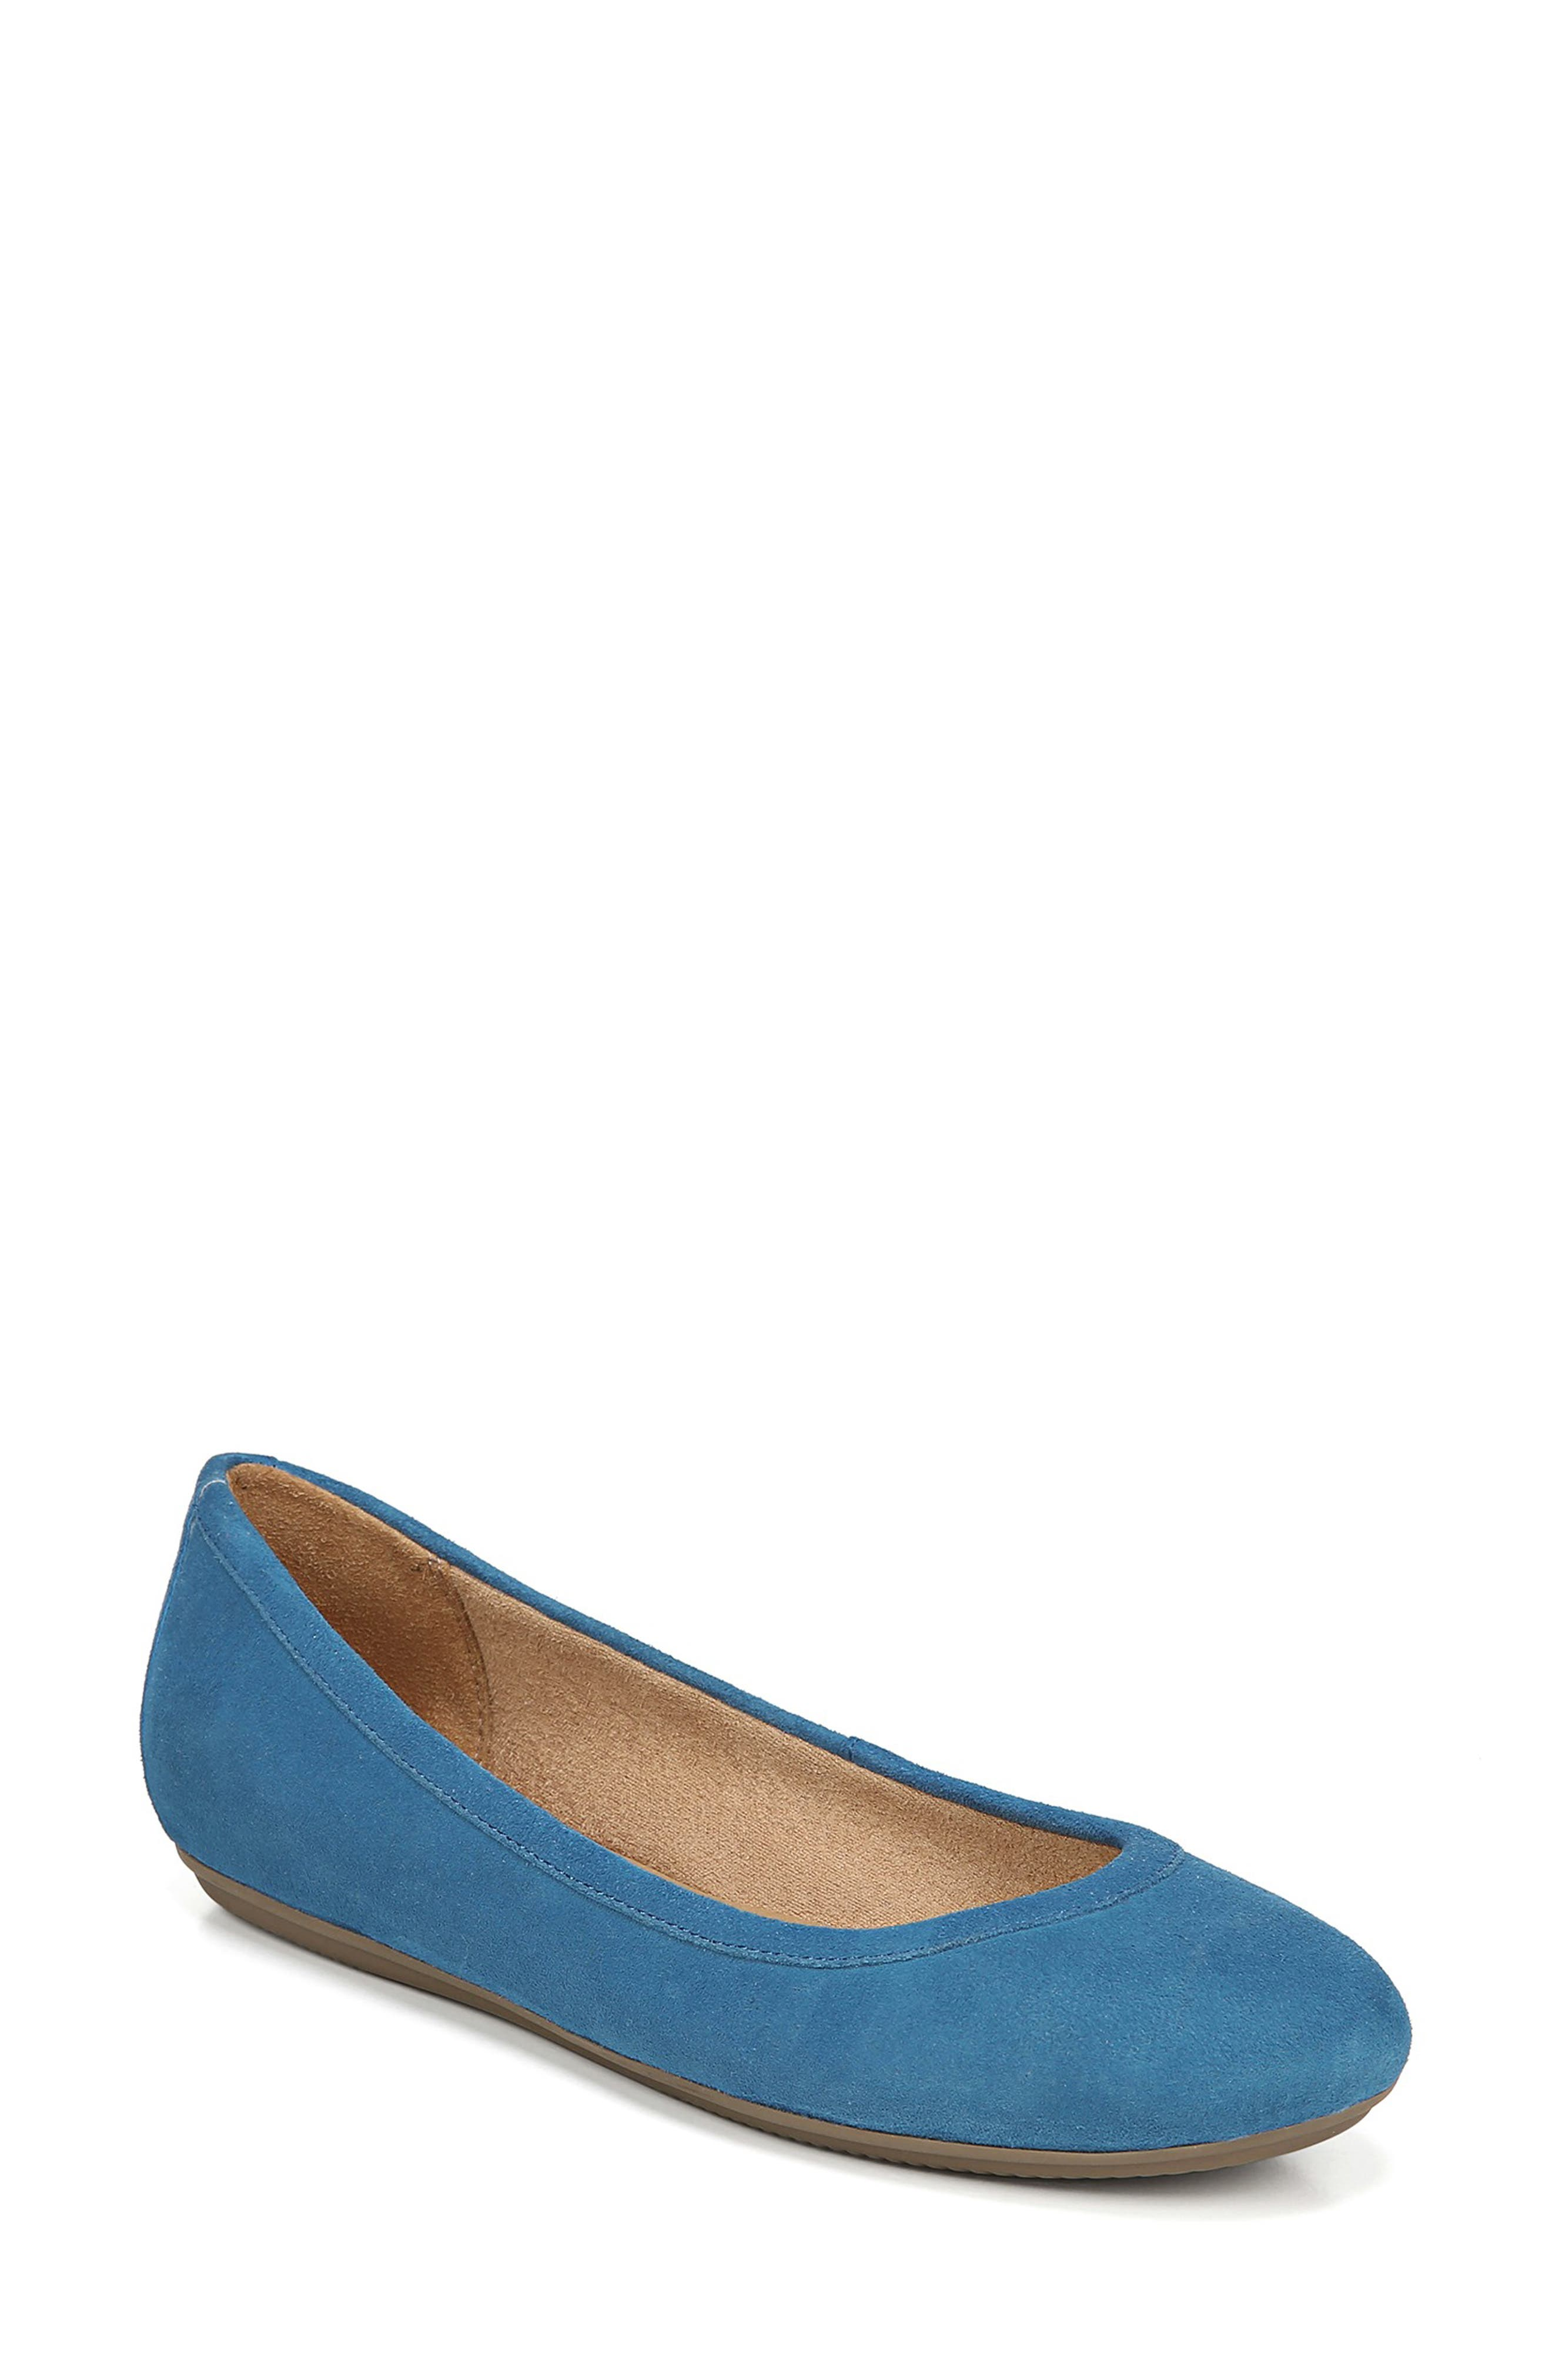 Naturalizer Brittany Flat, Blue